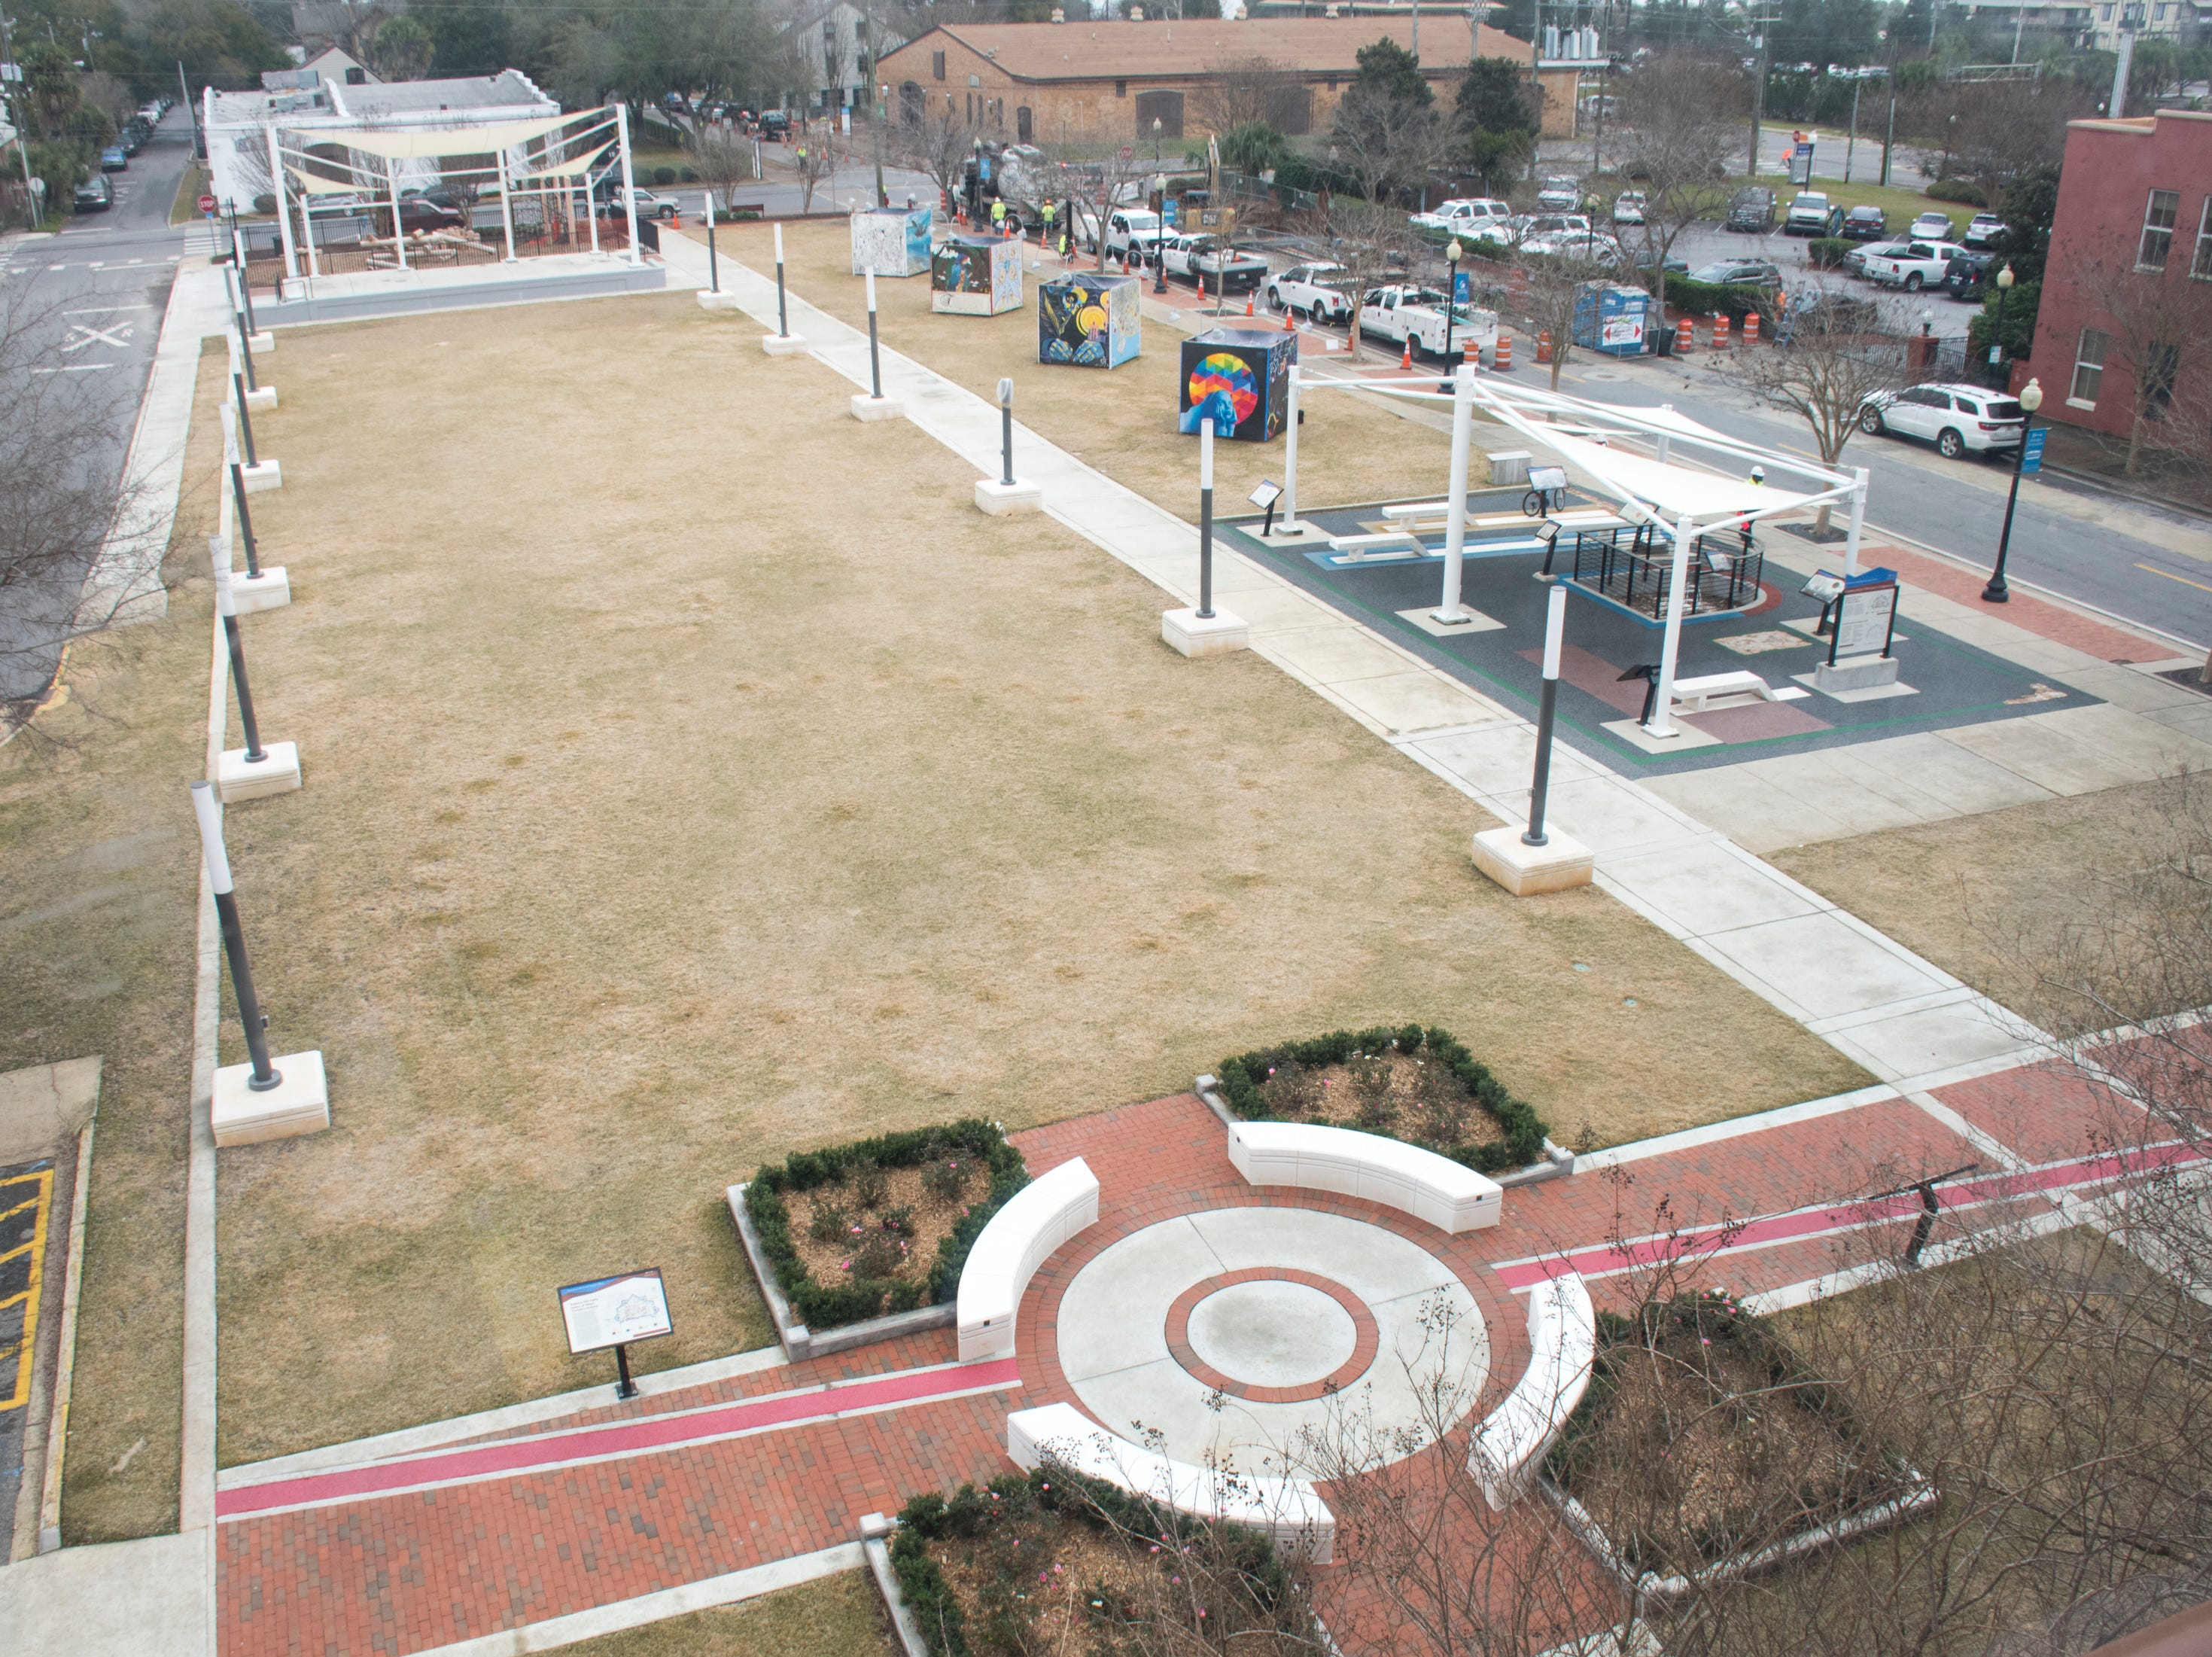 Museum Plaza behind the T.T. Wentworth Museum in downtown Pensacola on Tuesday, February 5, 2019.